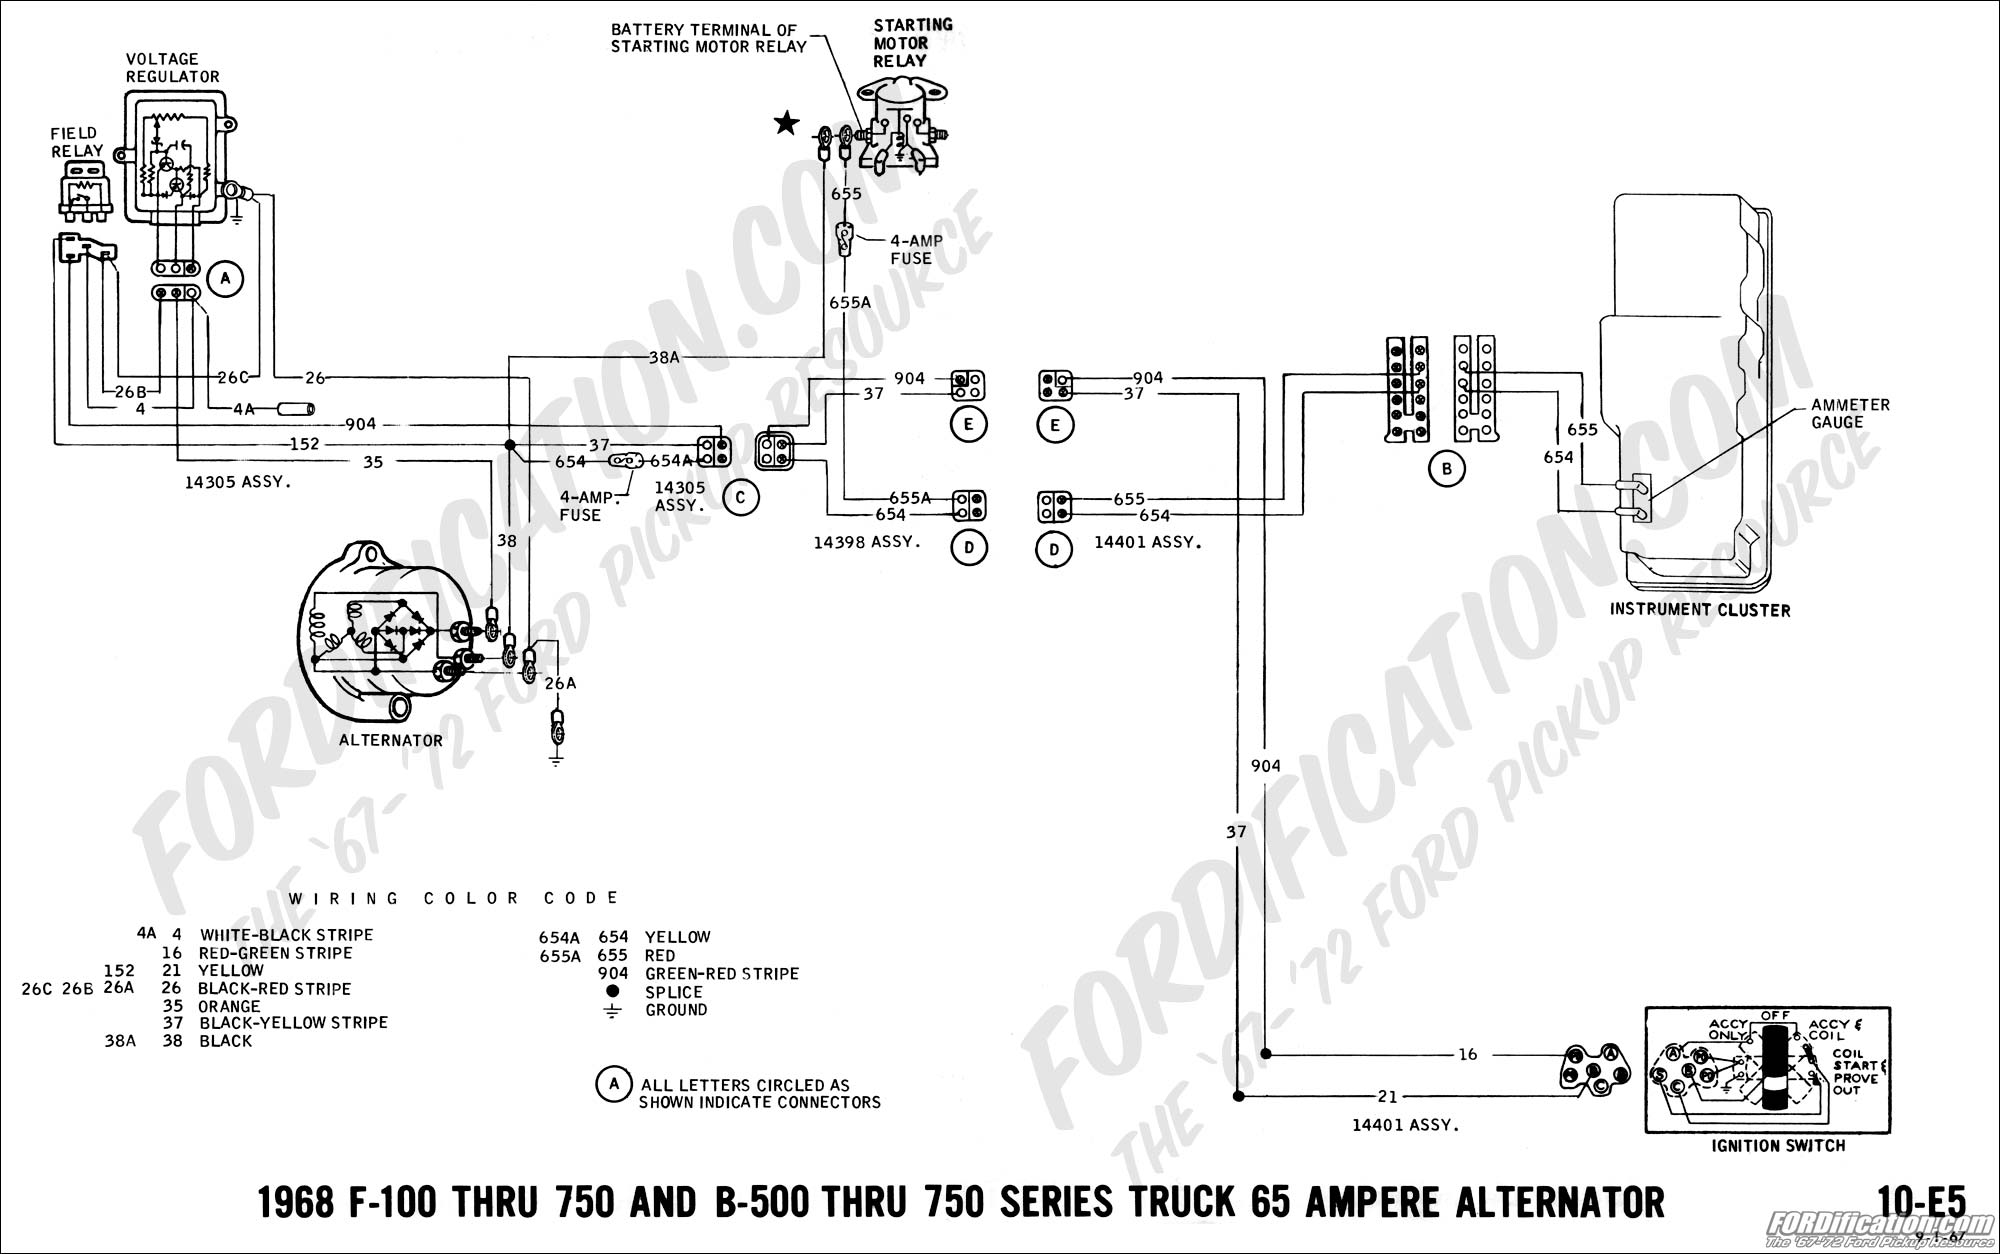 1968 f100 wiring diagram for neutral safety switch ford truck technical drawings and schematics section h